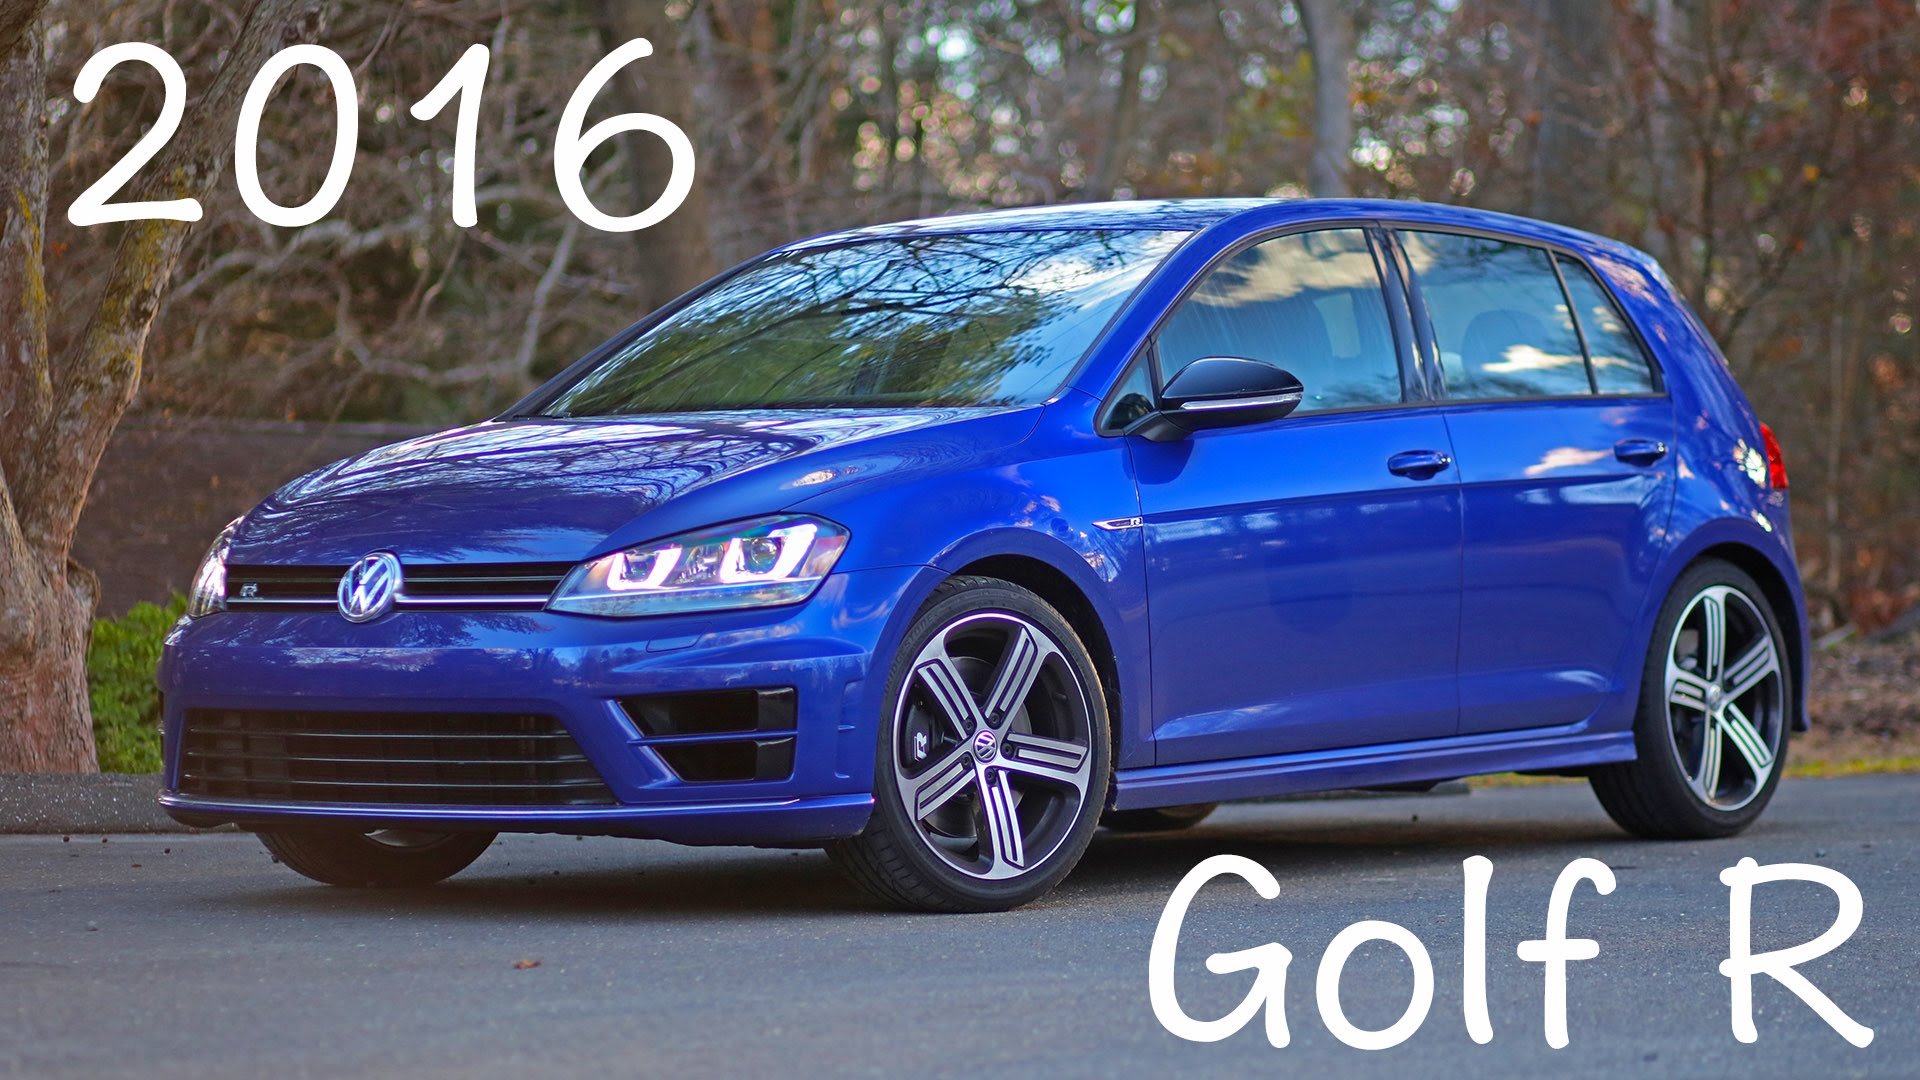 2016 Volkswagen Golf R #6